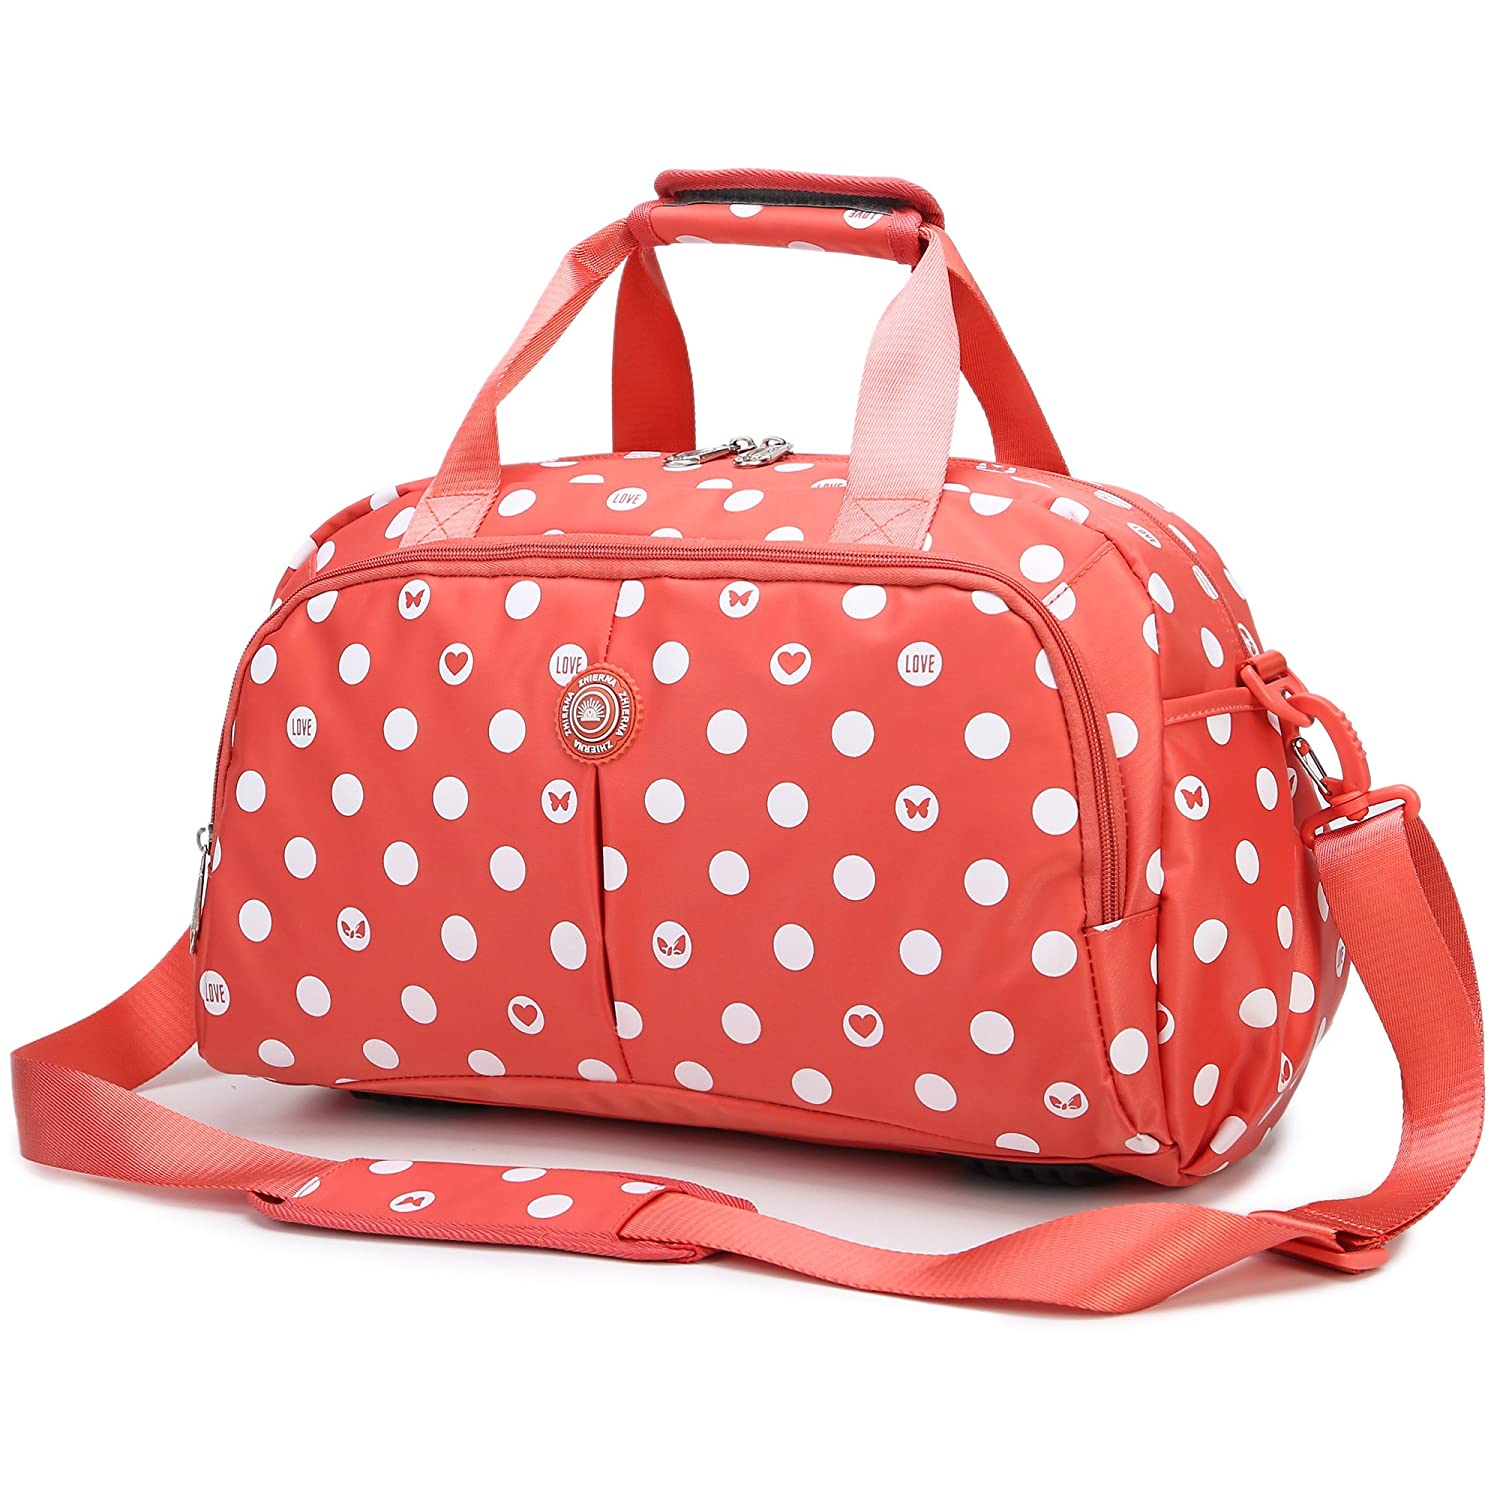 AOKE Water Resistant Travel Totes Duffel Luggage Bag Overnight Weekend Bag Nylon Fabric Stand Bag Spots Orange with Anti-theft Free Gift